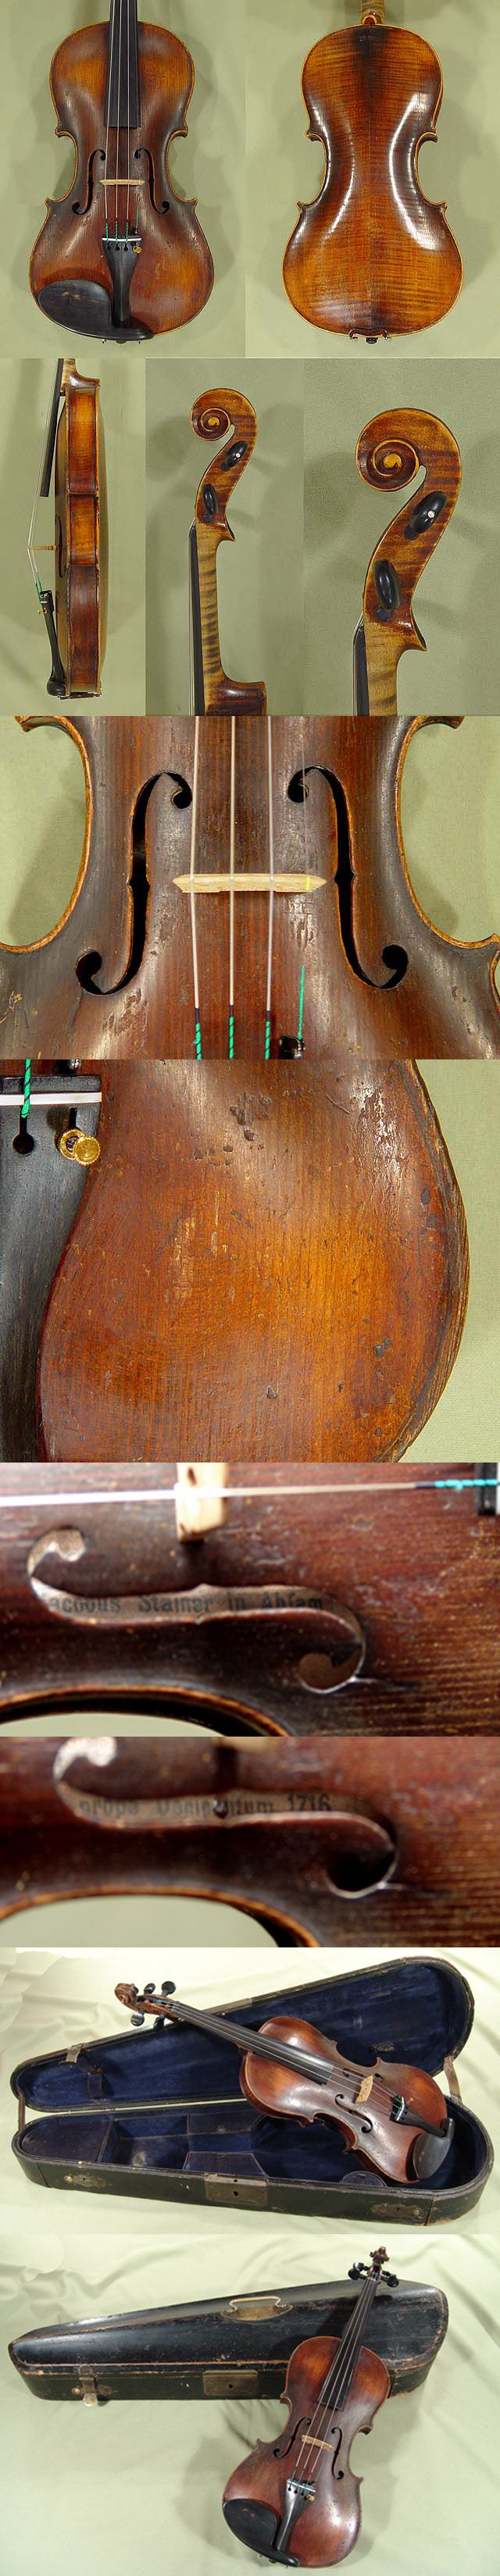 292 years old, the Violin 'Jacobus Stainer 1716' Model.